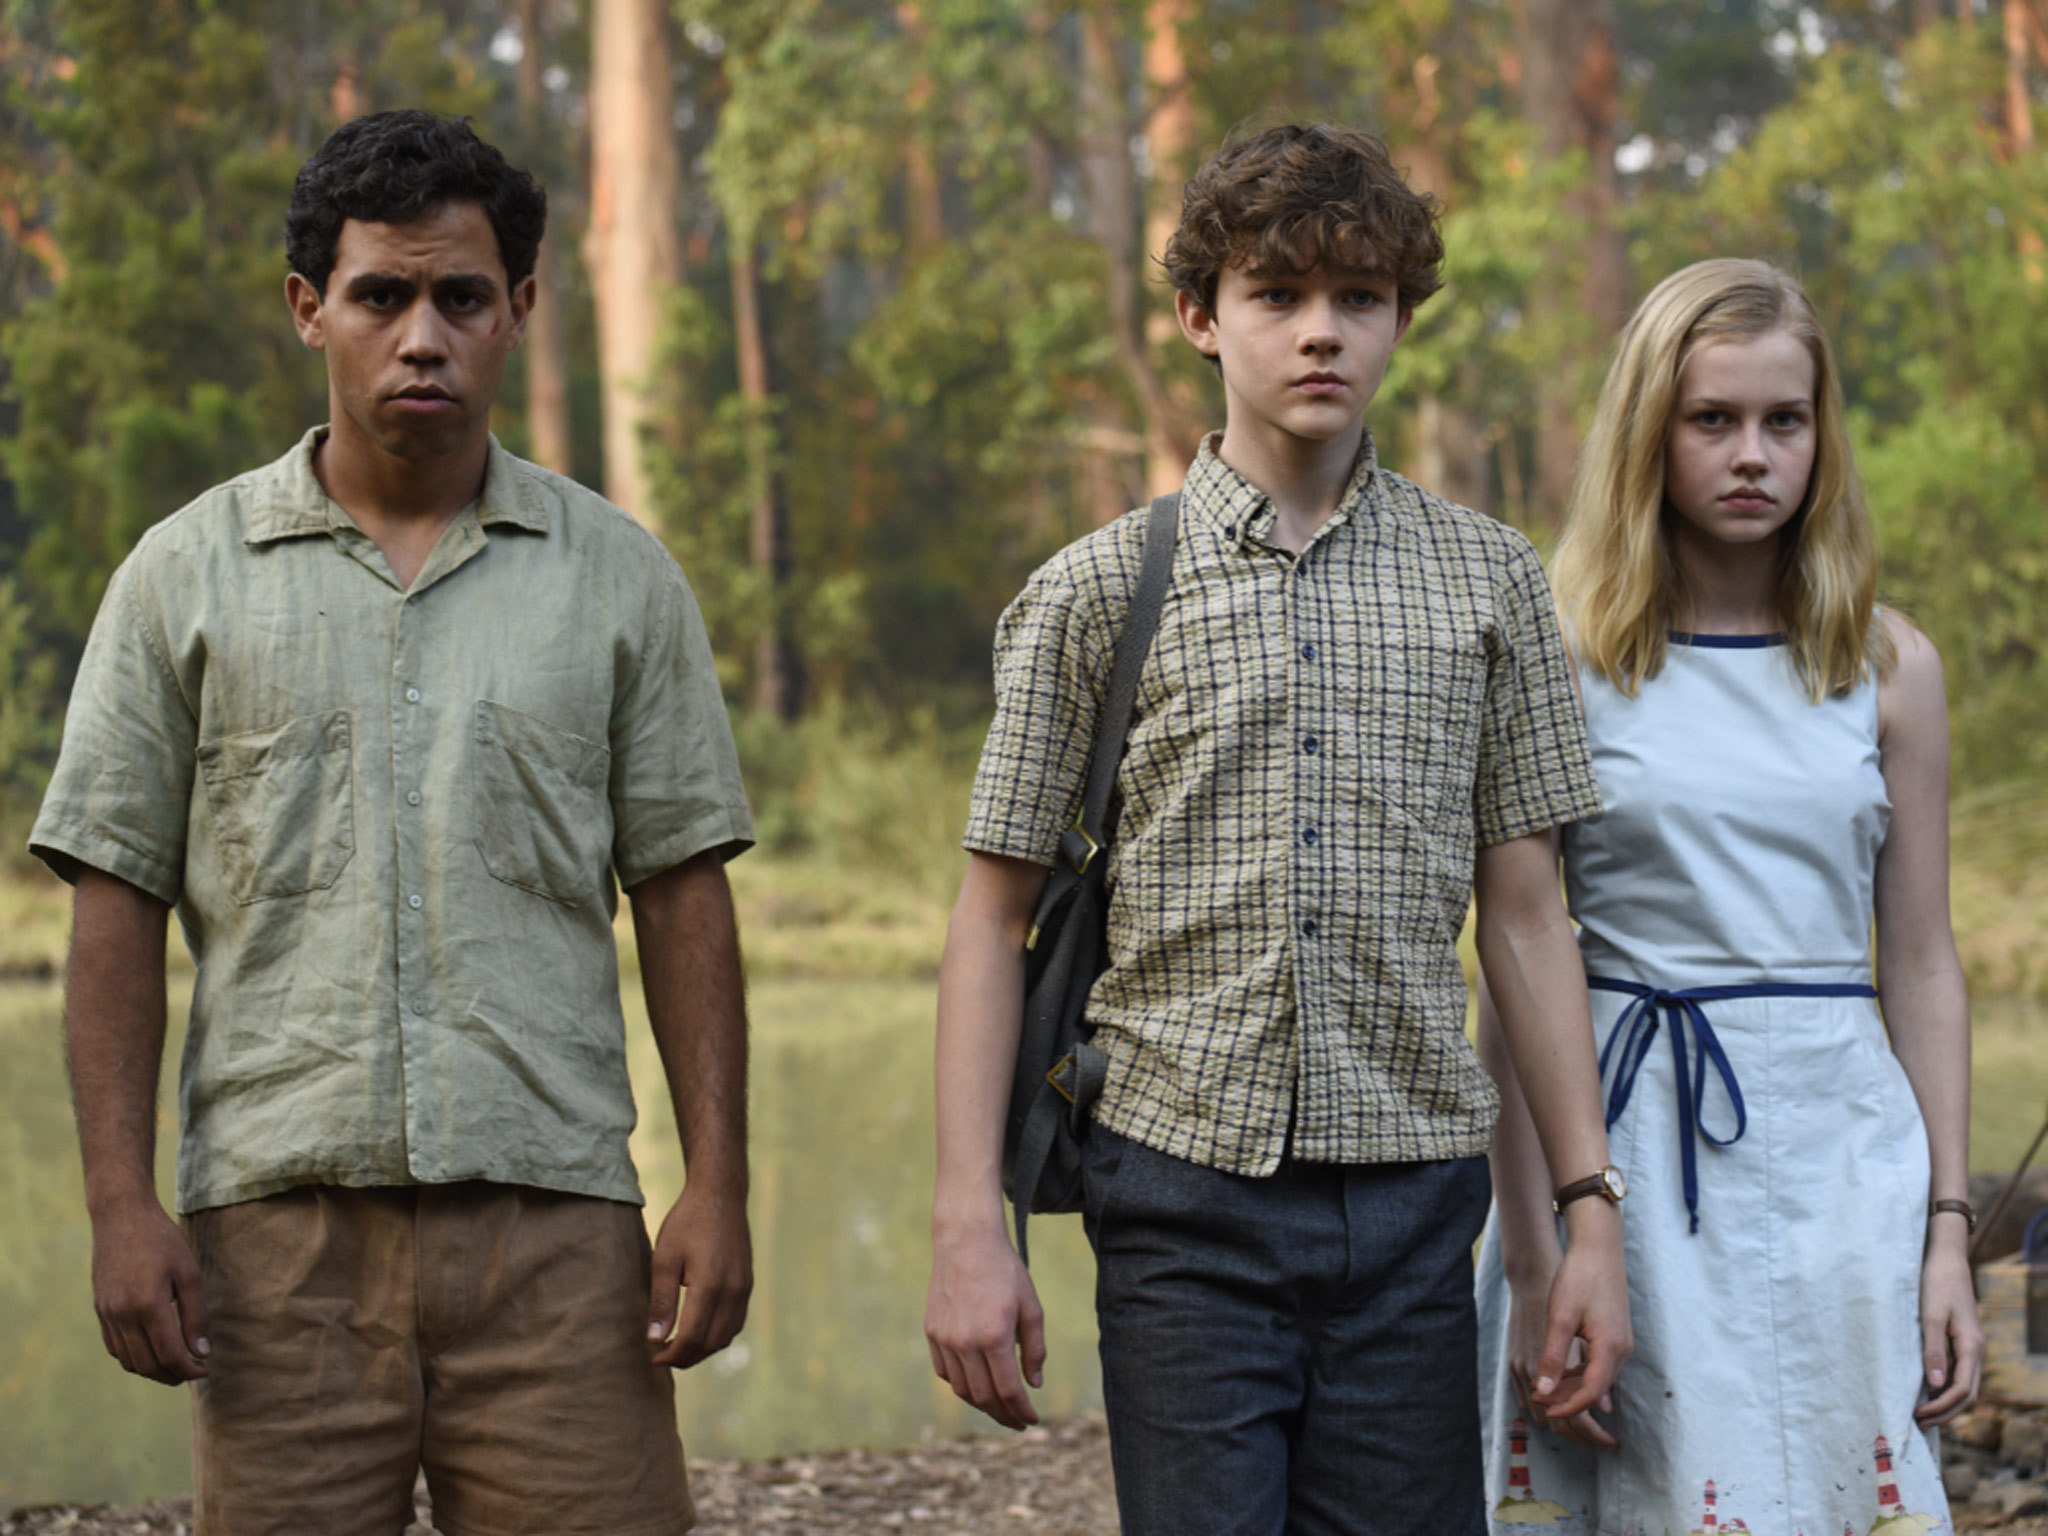 The teaser trailer for Jasper Jones just dropped